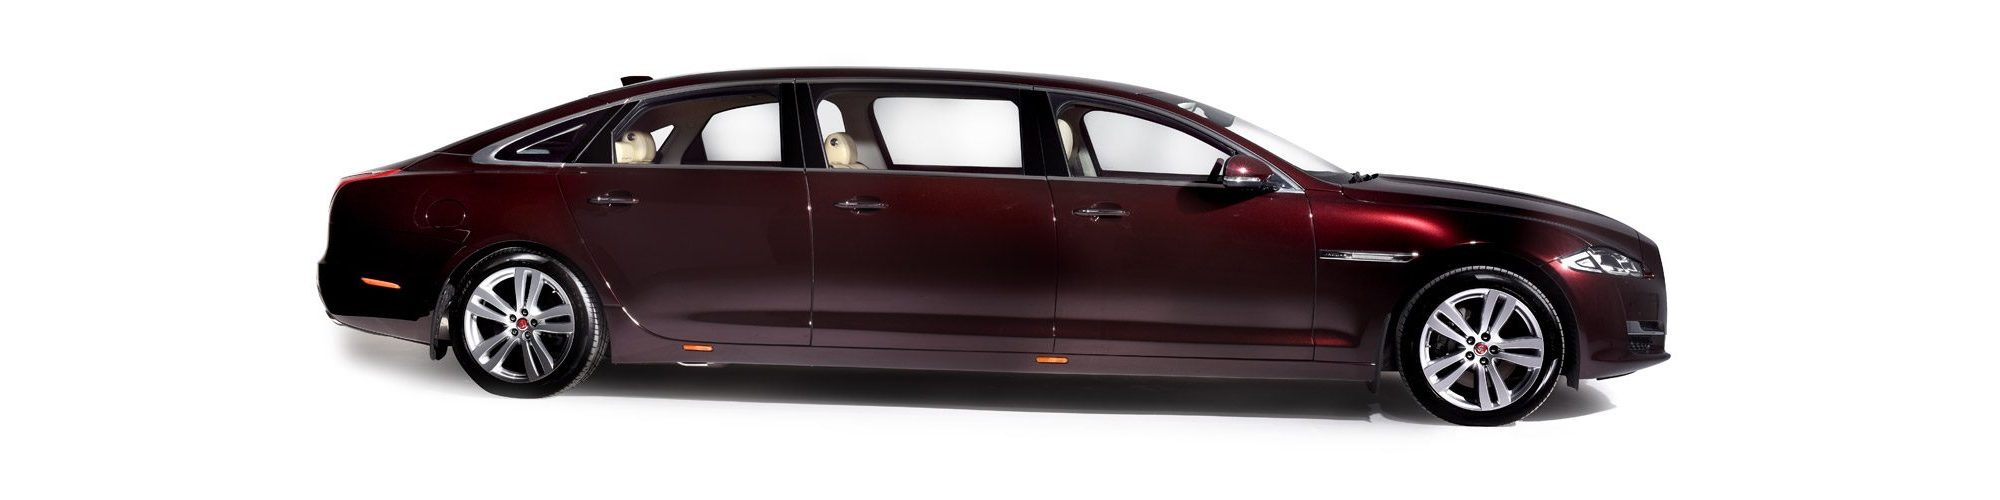 Wilcox 6 Door Limousine based on Jaguar XJ